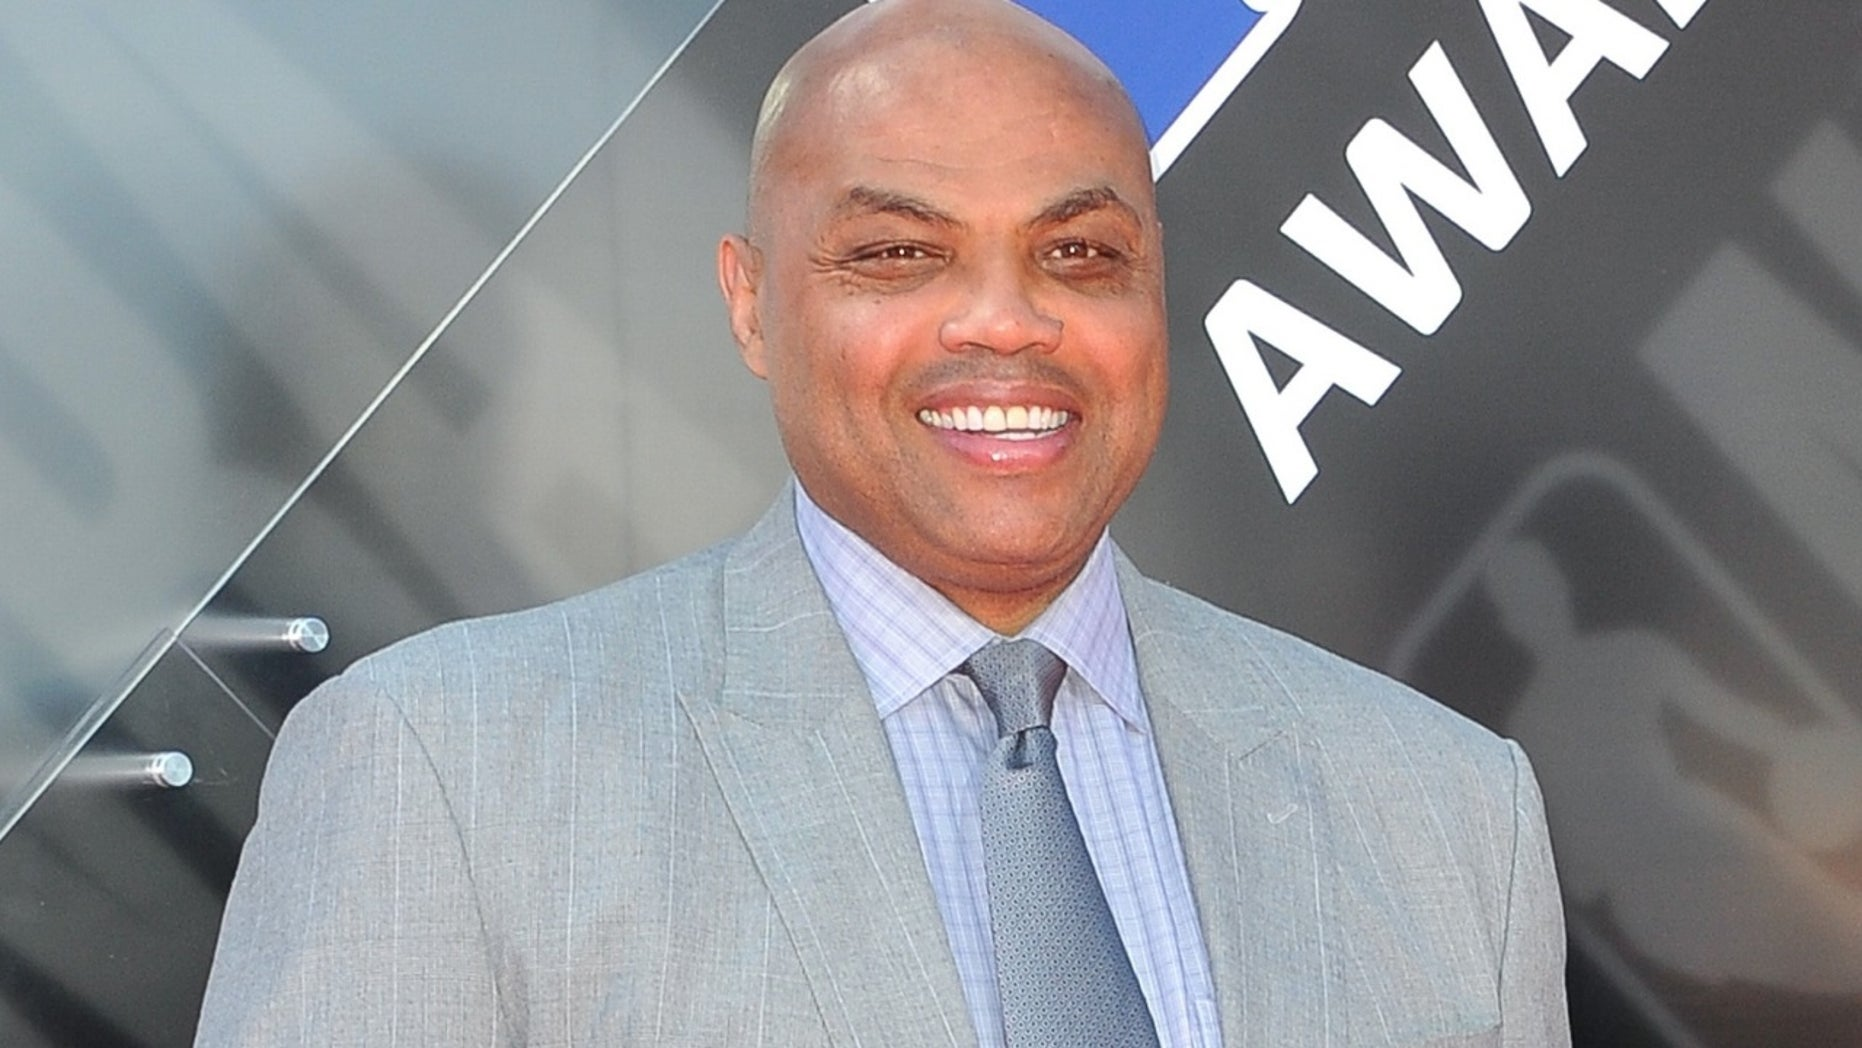 What Are The Names Of The Tnt Basketball Commentators In The 2019 Playoffs: Charles Barkley Jokes About Jussie Smollett, Liam Neeson